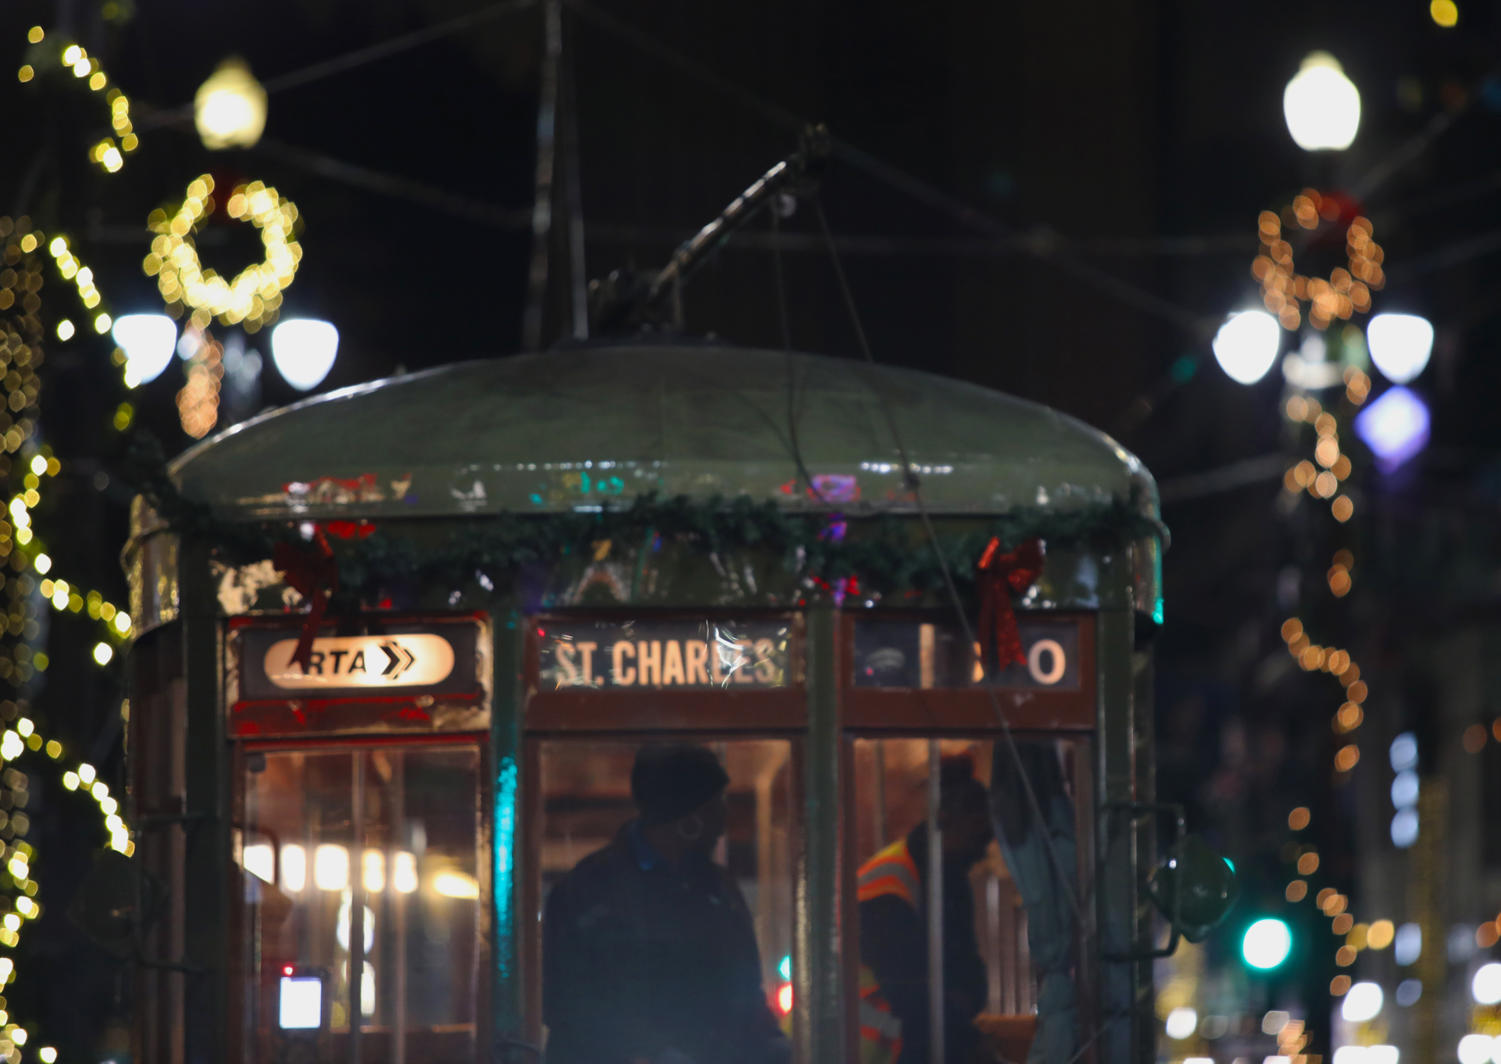 Holiday+garlands+are+hung+on+the+Canal+St.+streetcars+in+celebration+of+the+holidays.+Photo+credit%3A+Andres+Fuentes